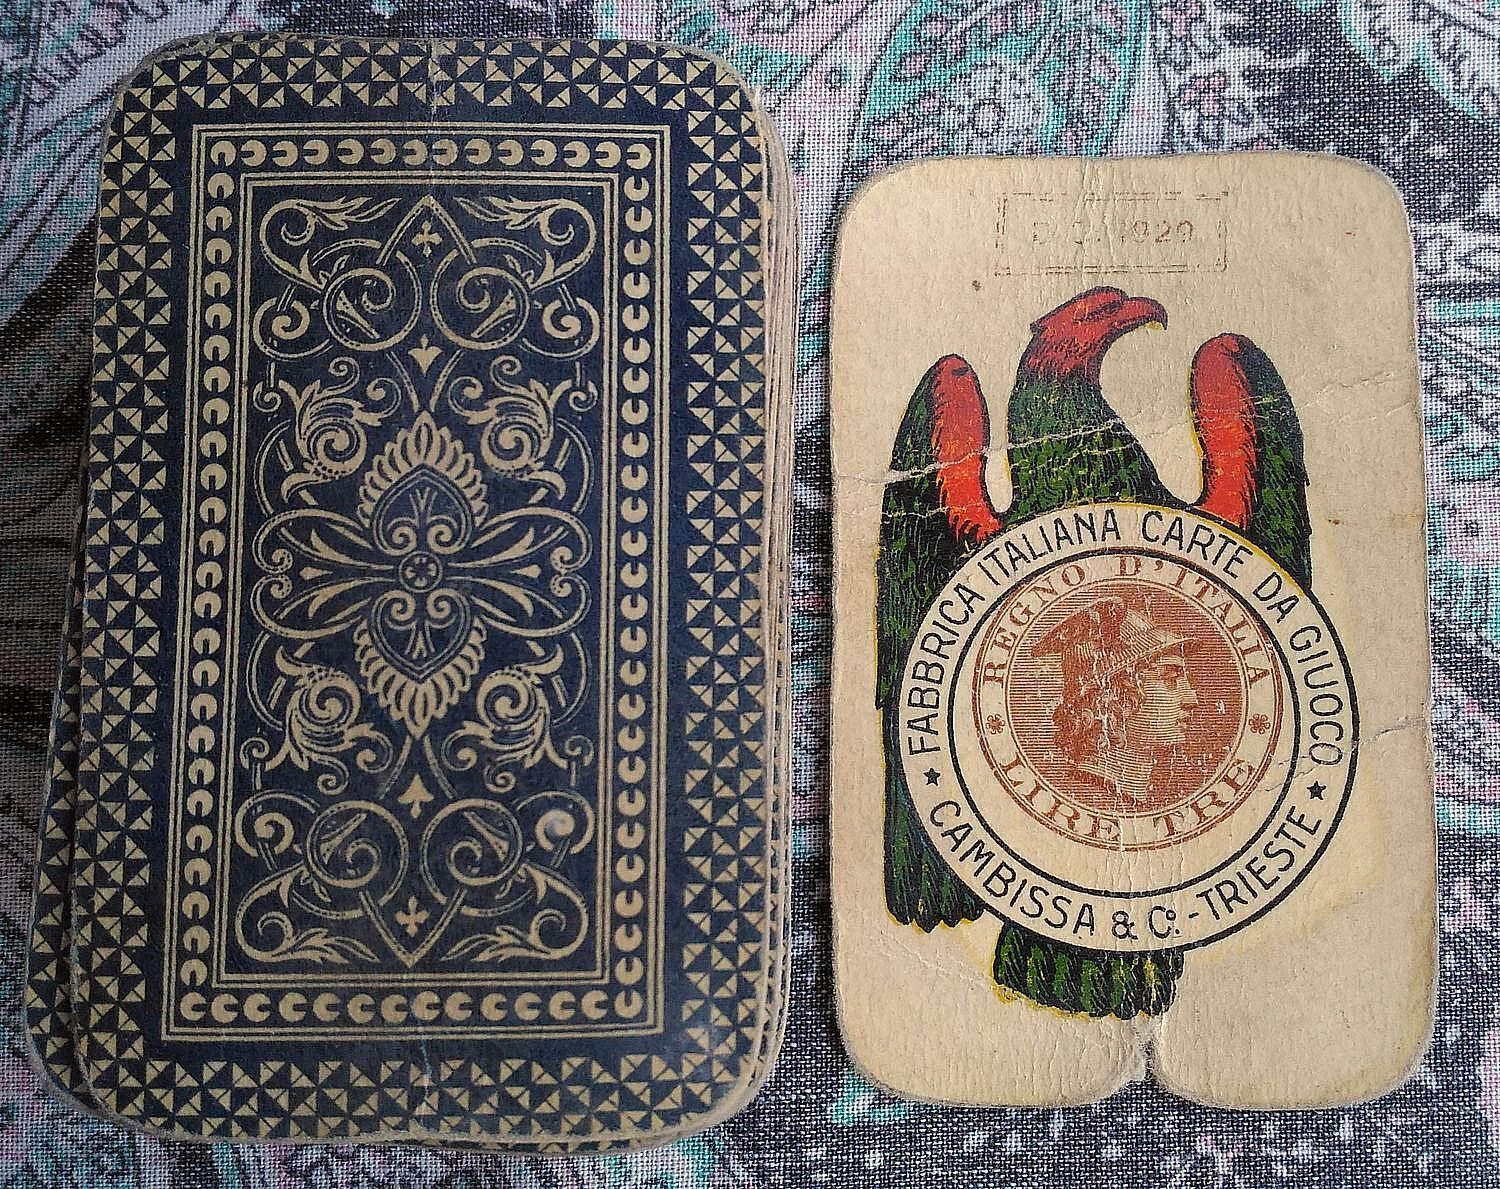 SICILIANE Regno d'Italia 1929 CAMBISSA Mazzo di Carte da Gioco Old Playing Cards